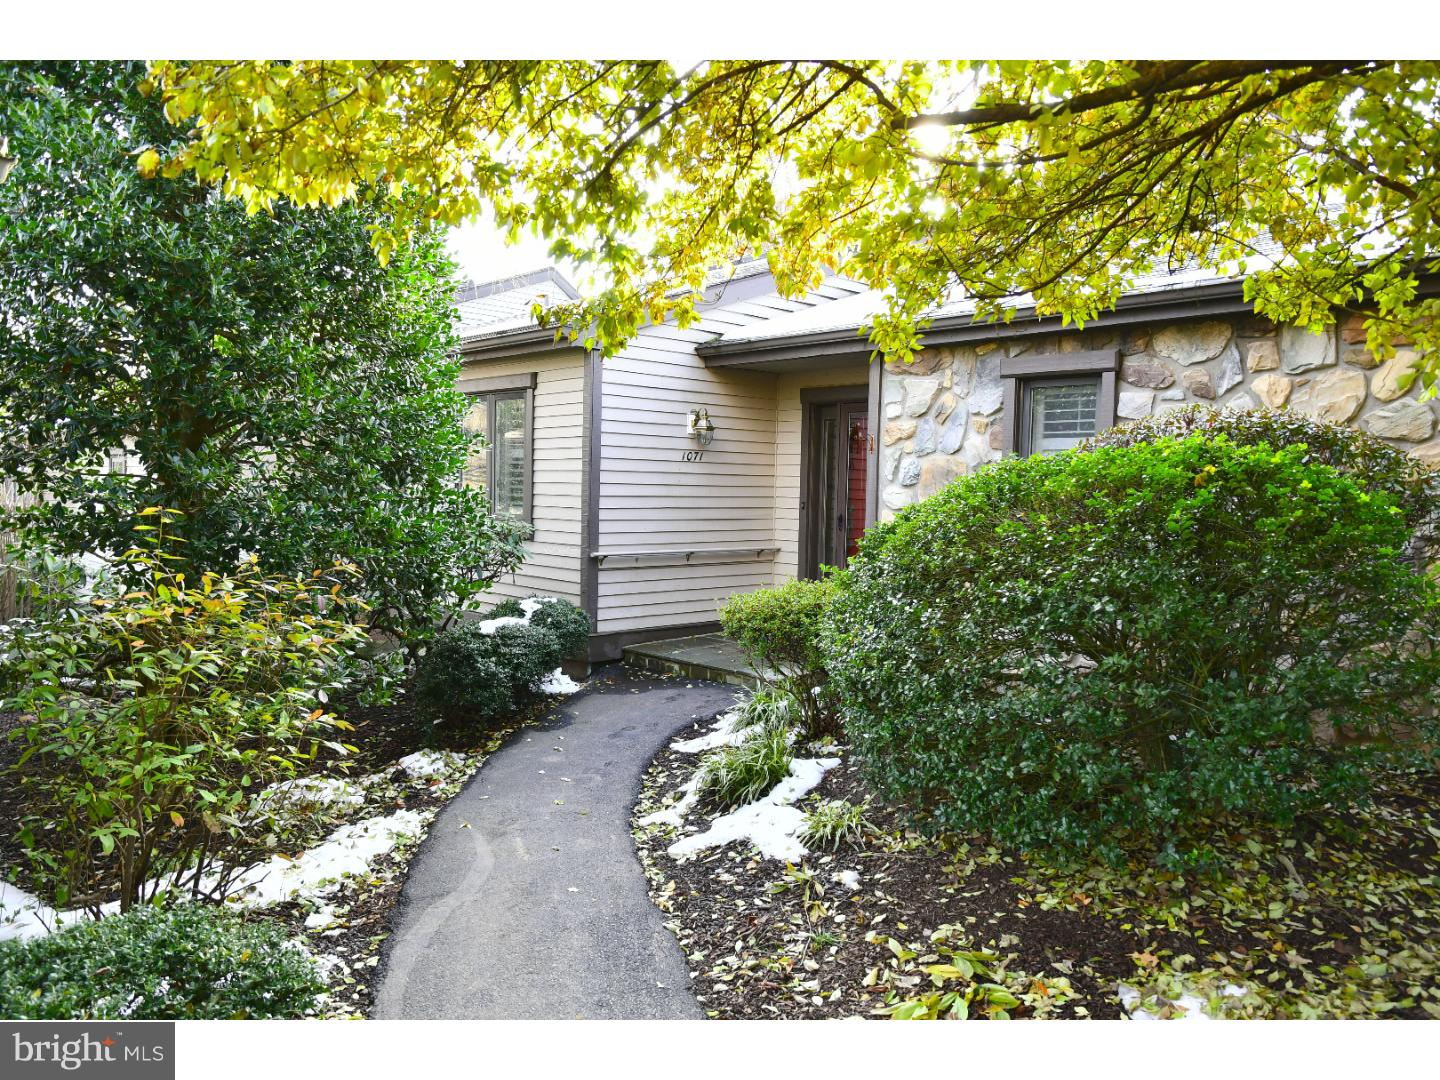 1071 Kennett Way West Chester, PA 19380